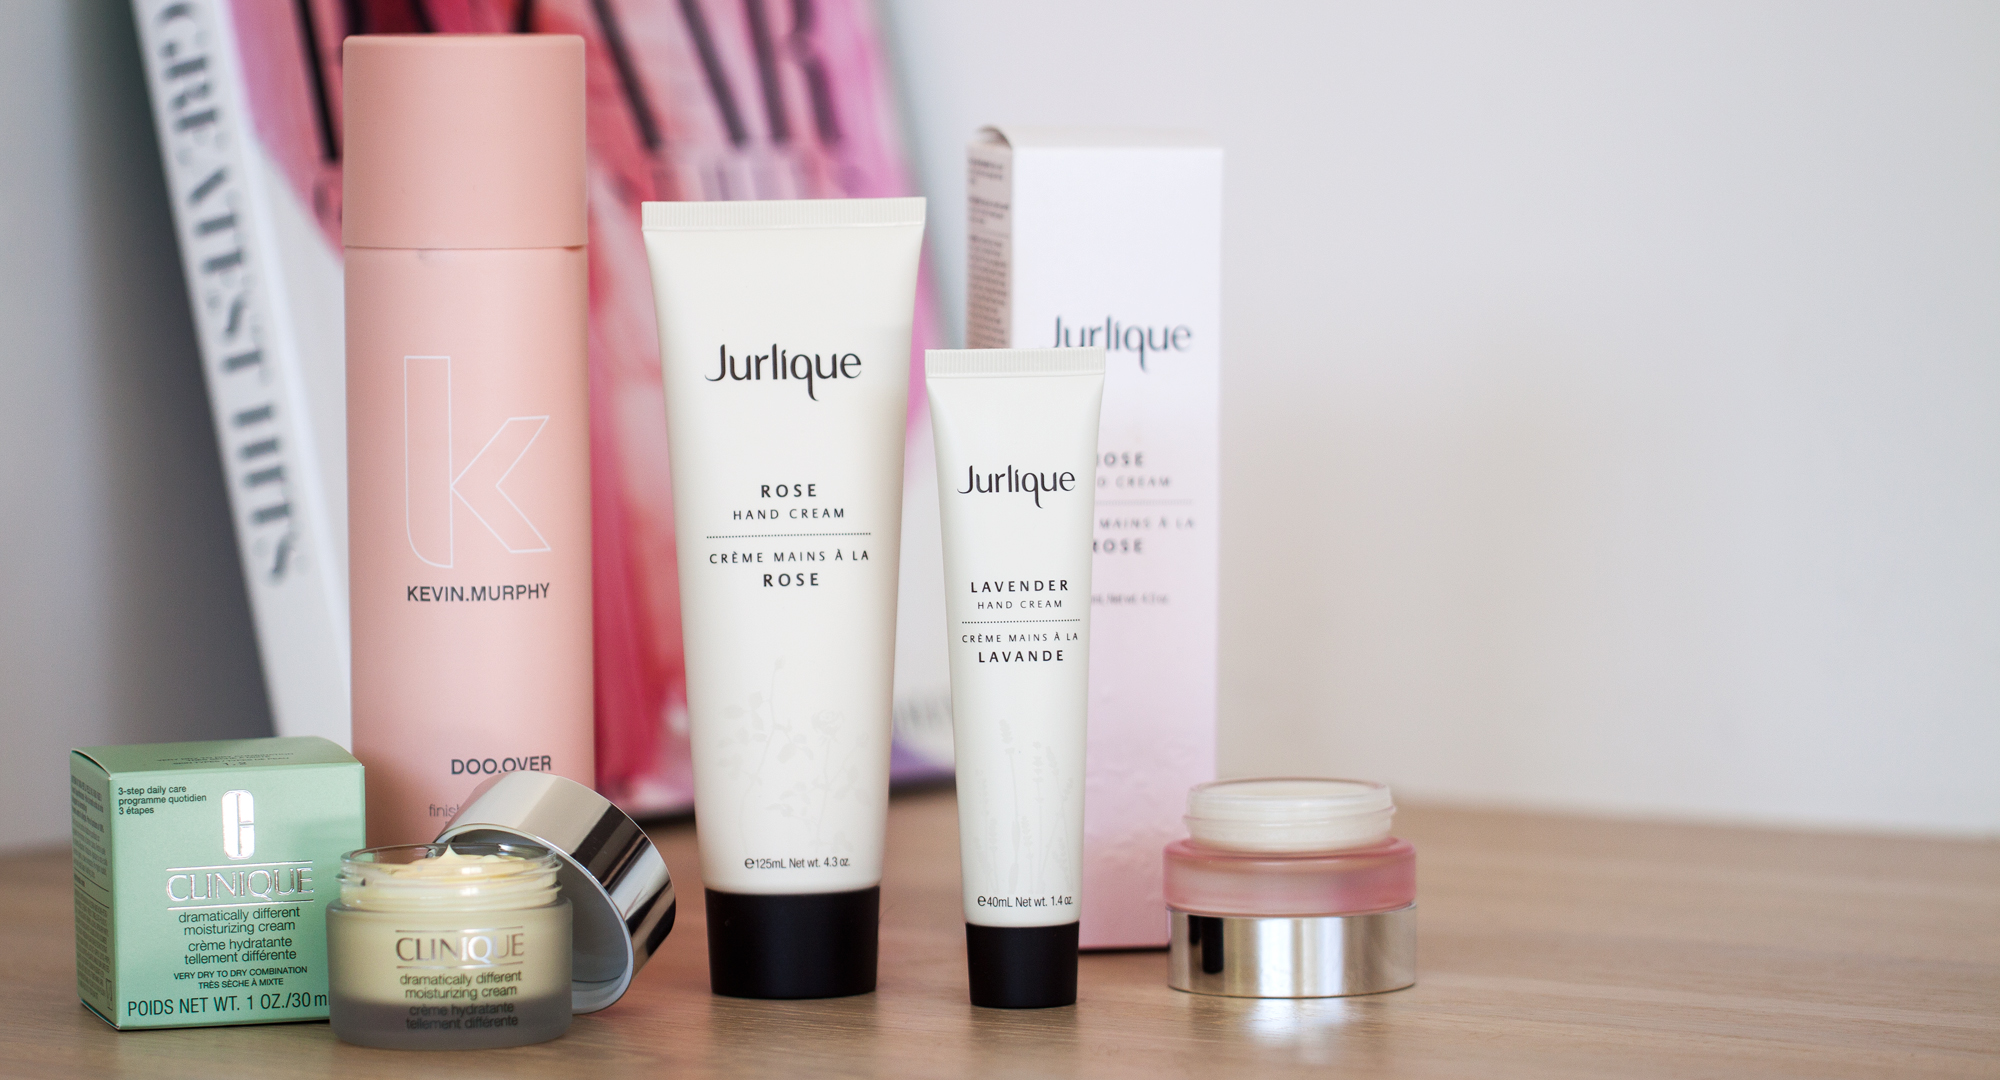 kevin murphy, doo over, dry powder, finishing hairspray, jurlique, rose hand cream, clinique, sarah jane young, beauty blogger, beauty review